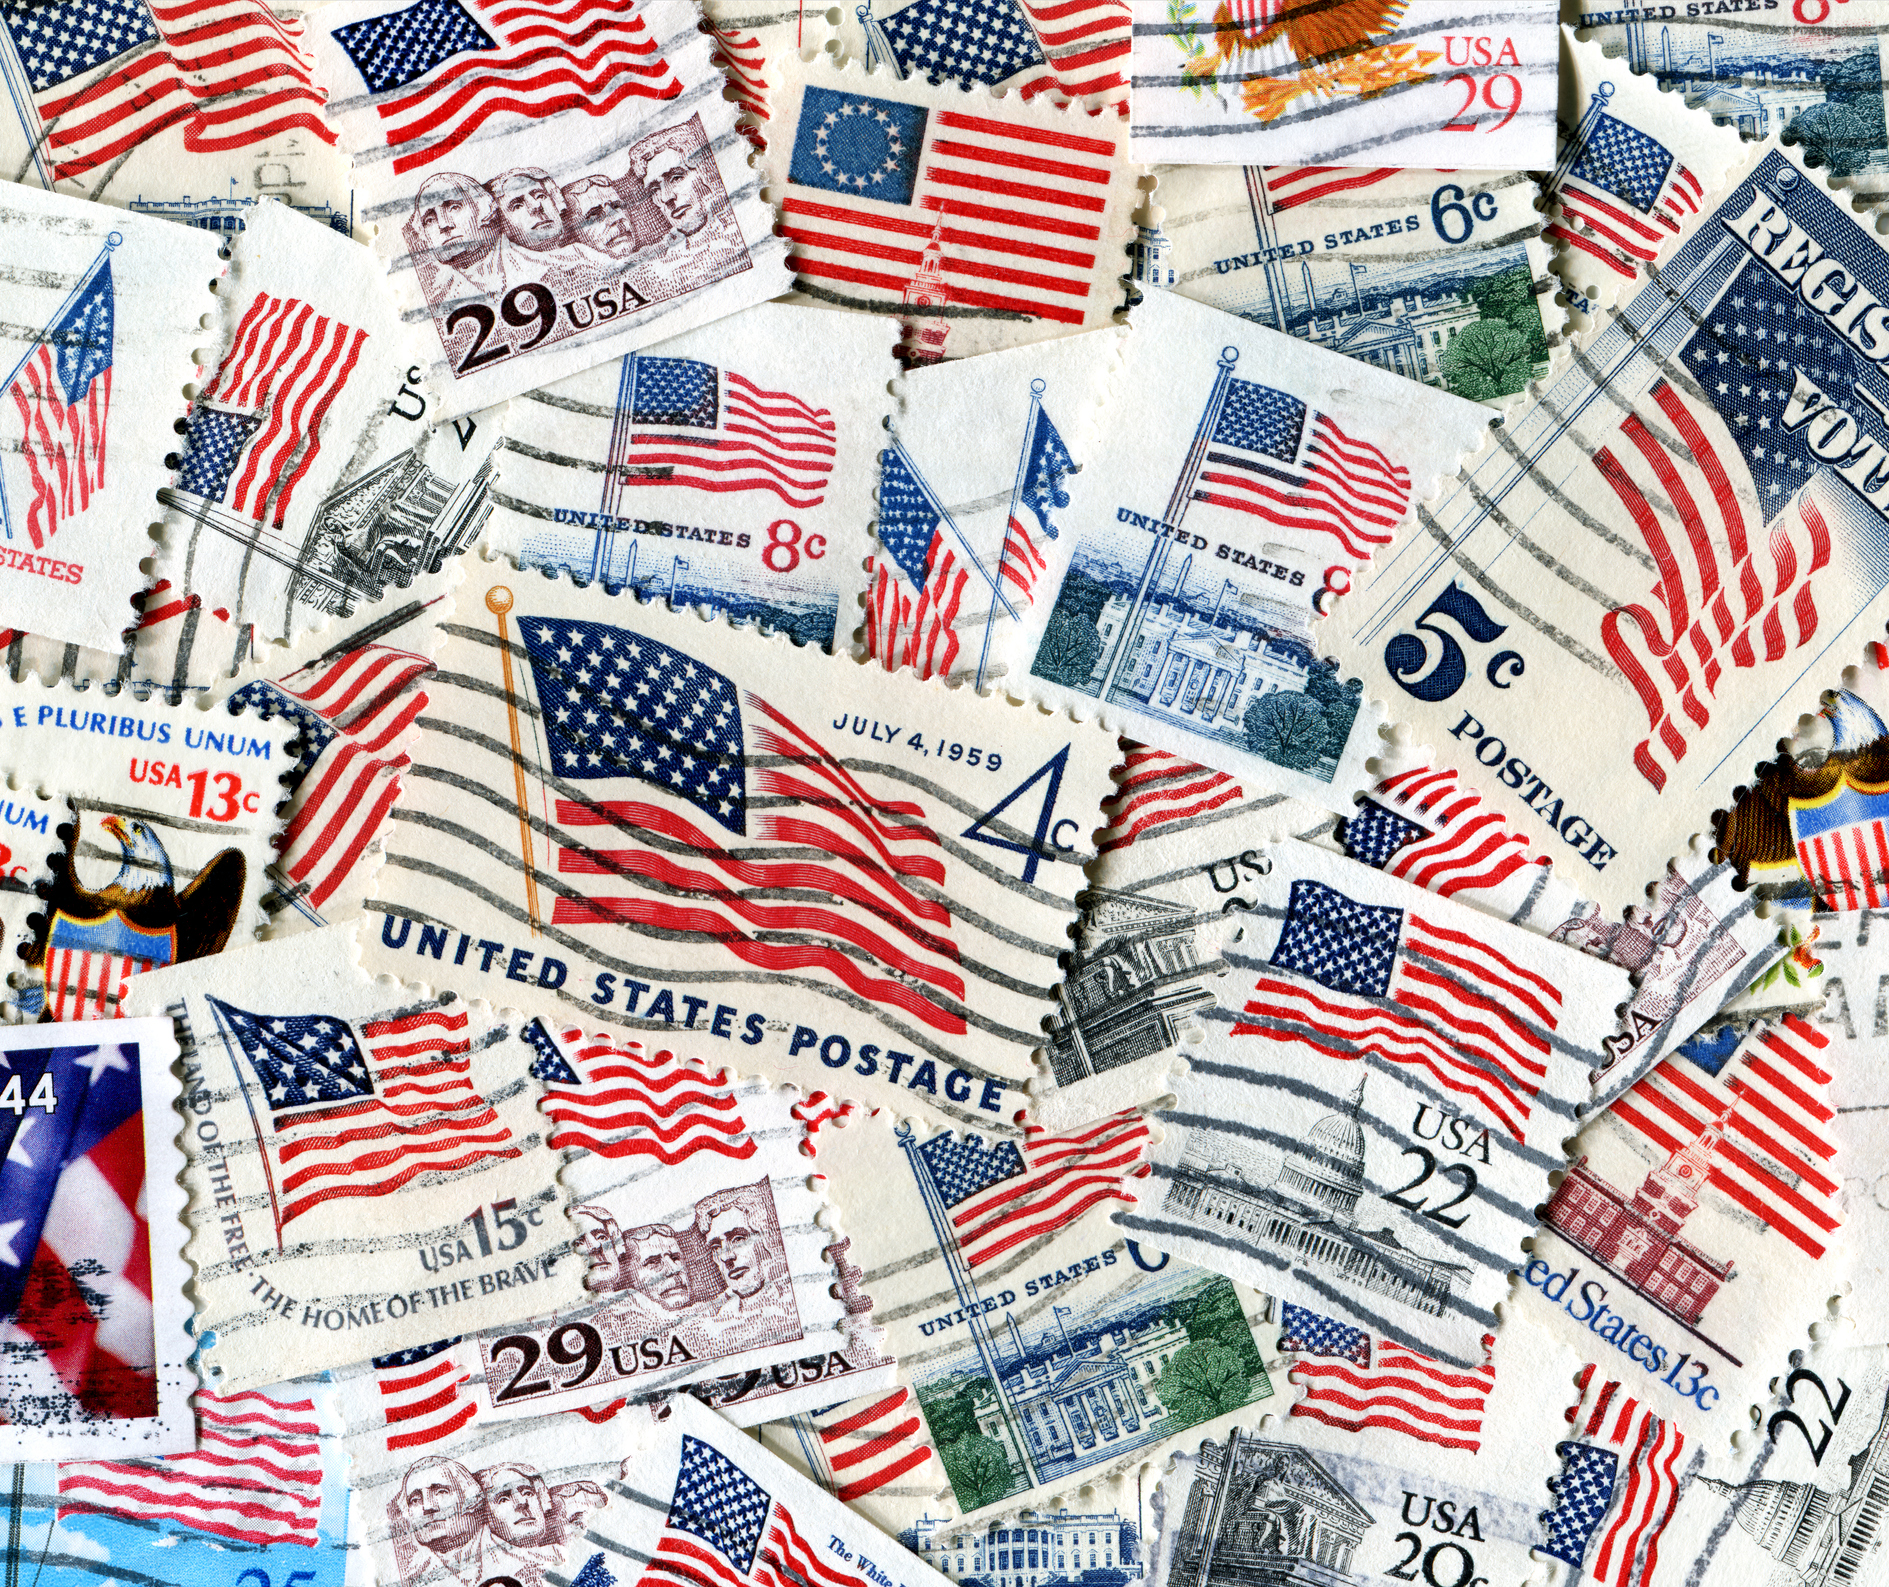 How Much Is A Book Of Stamps In 2020